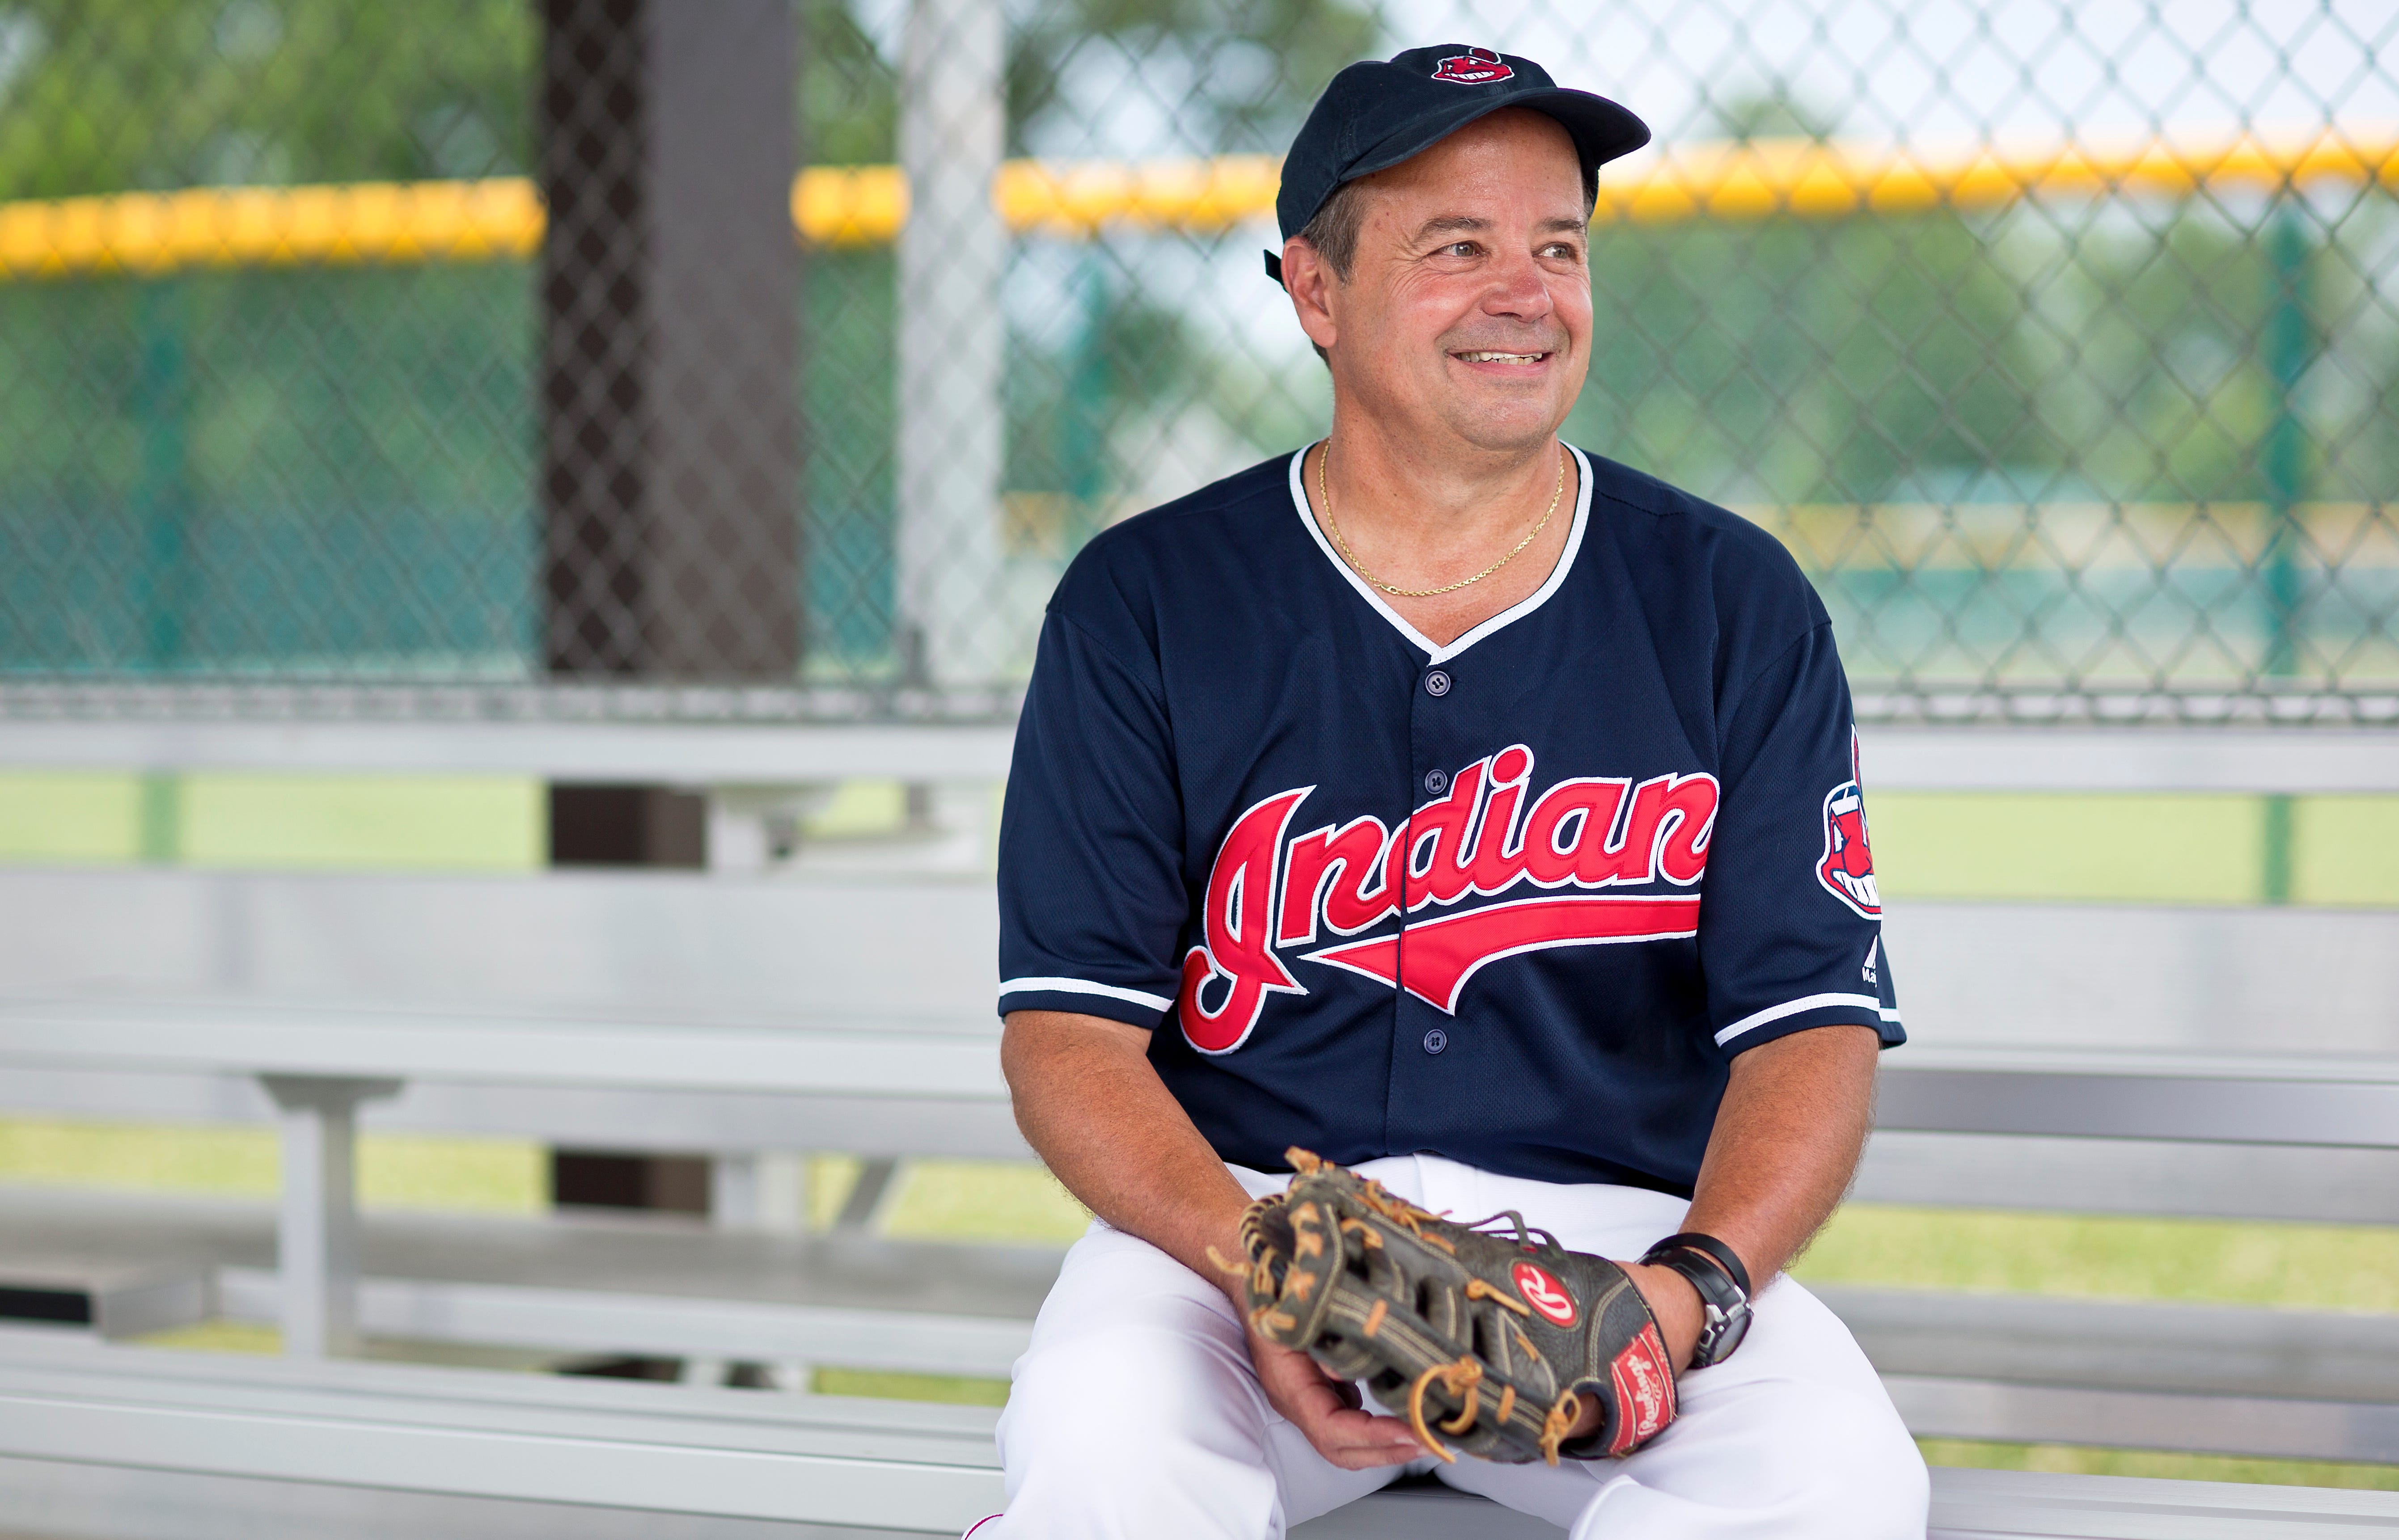 Mark Sigrist photographed at the Grove City Buddy Ball Field on Tuesday, June 29, 2021.